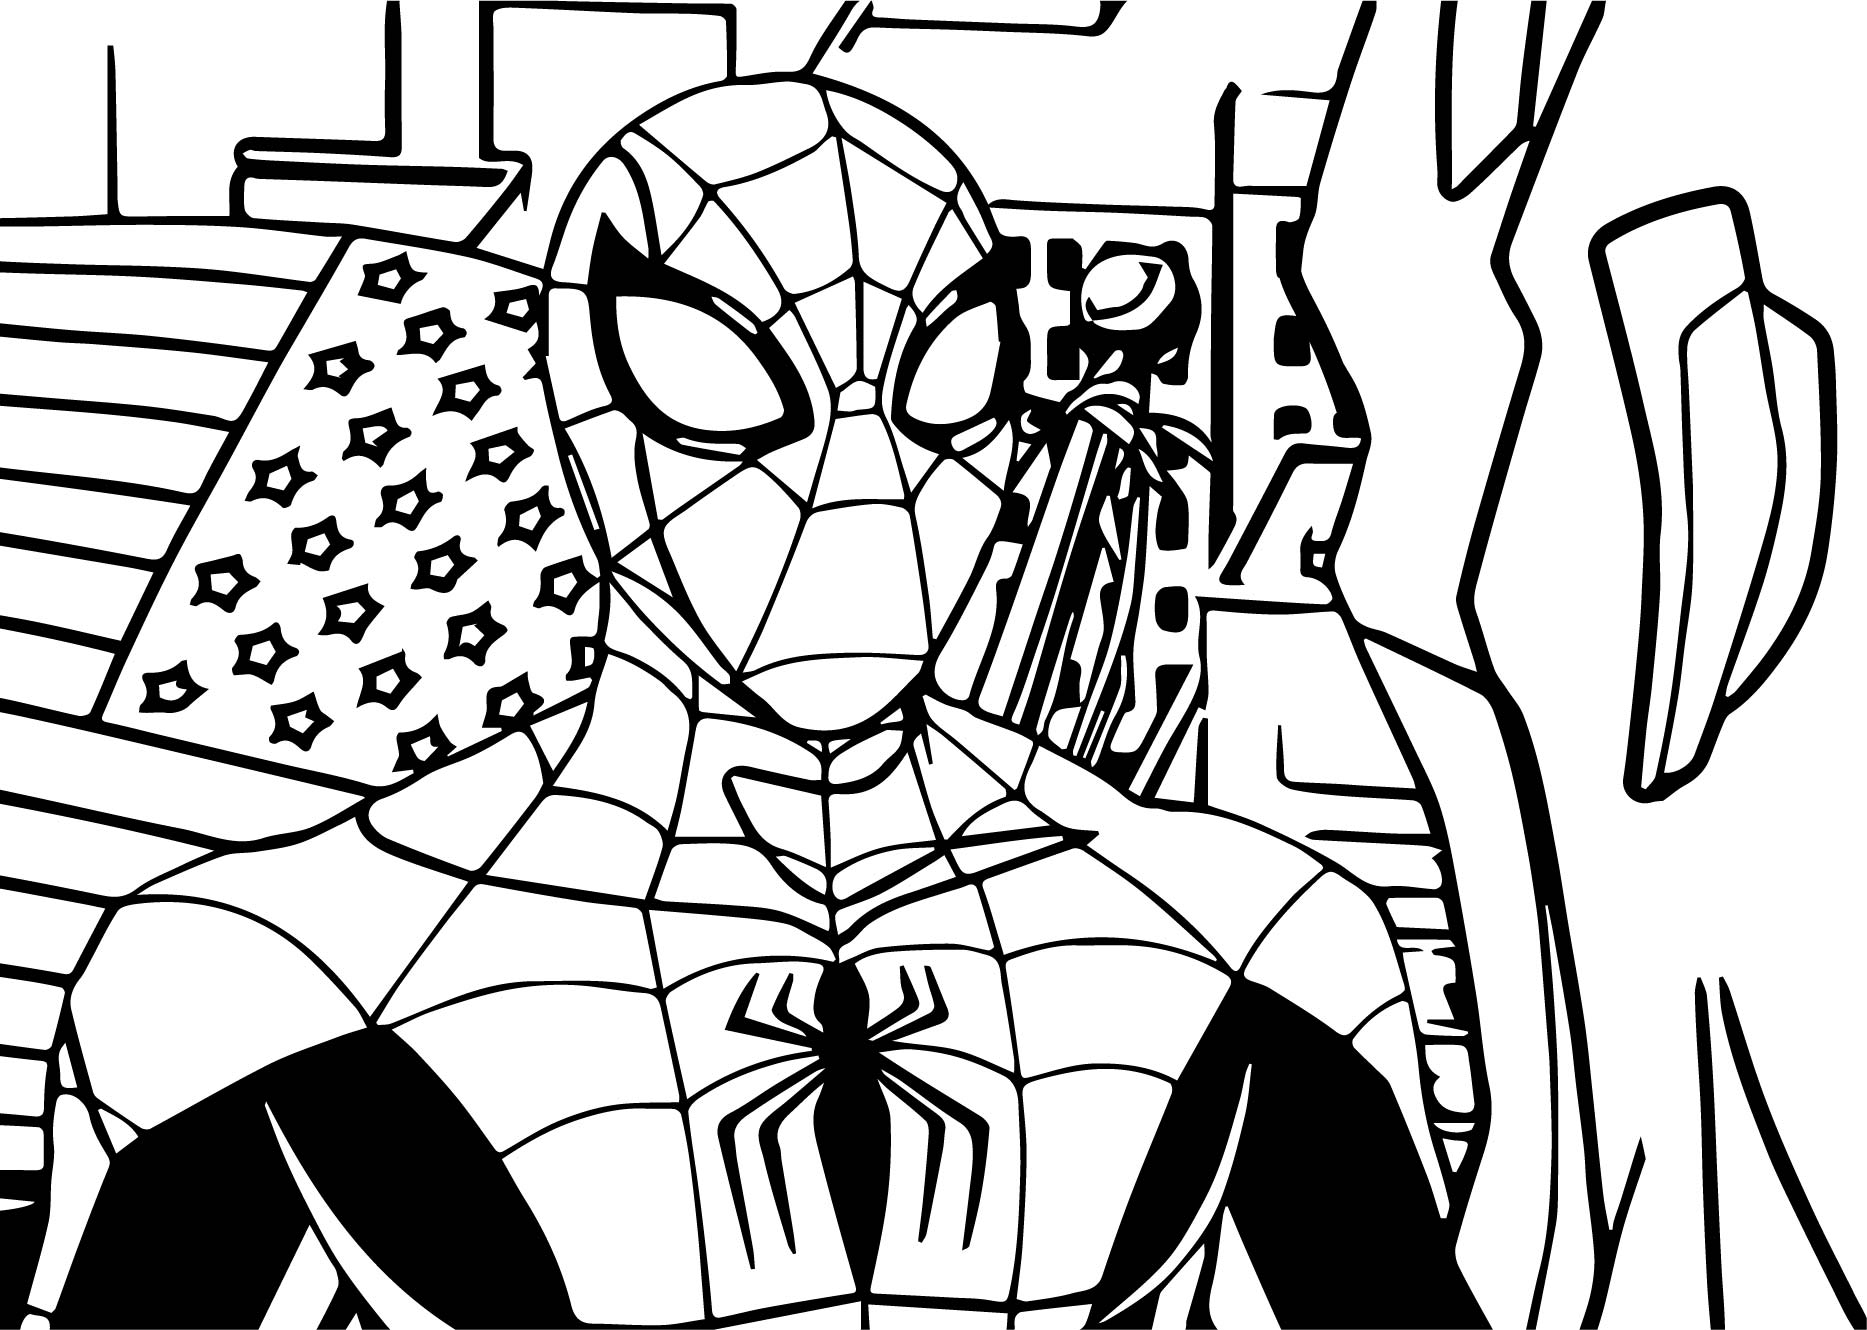 New Avengers Coloring Pages : New avengers pages coloring